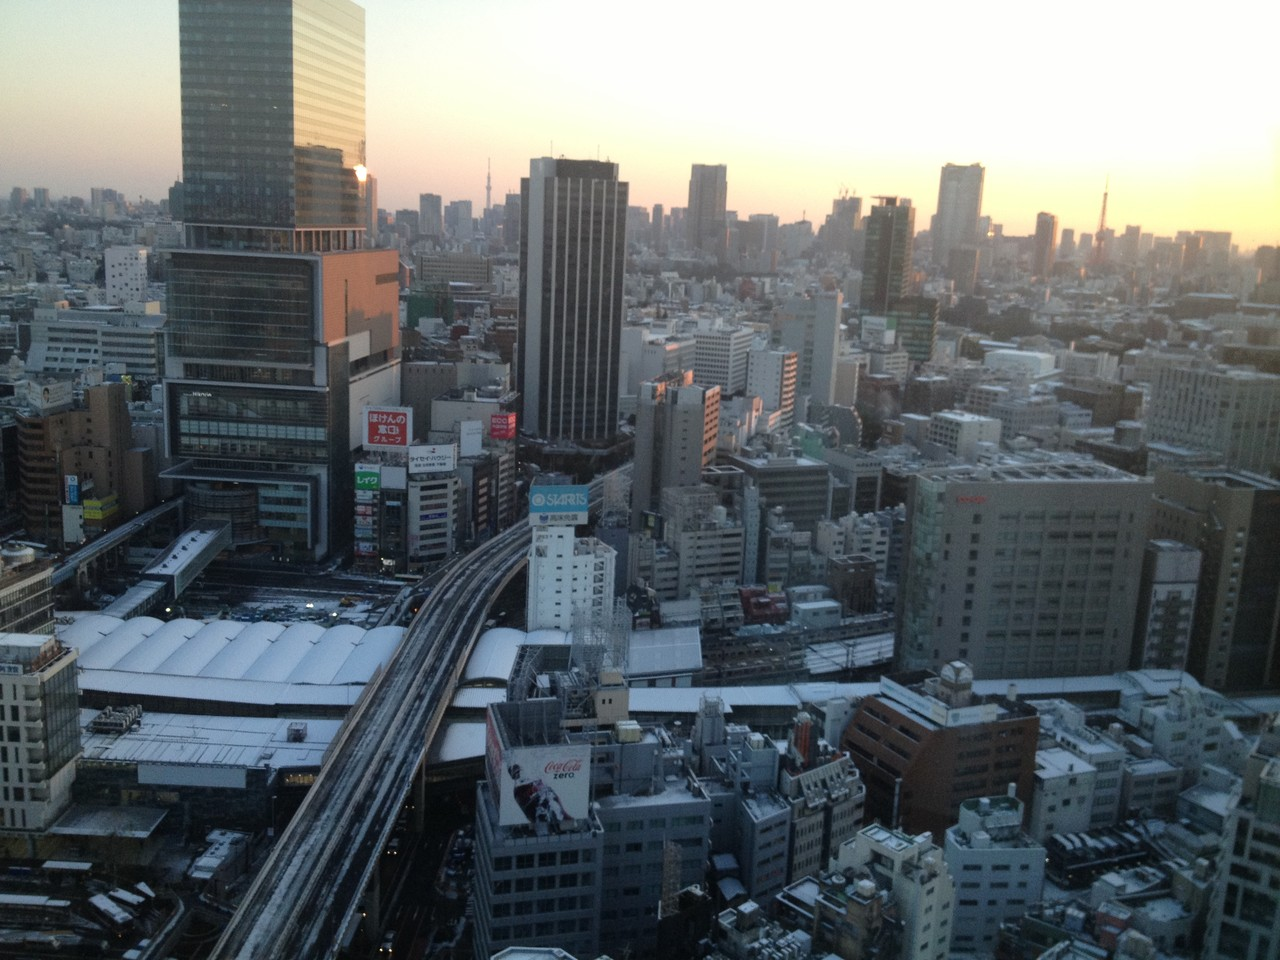 The view of snow covered Tokyo from my room ... this is where I will be hibernating now until leaving the city ... — in Shibuya-ku, Tokyo.